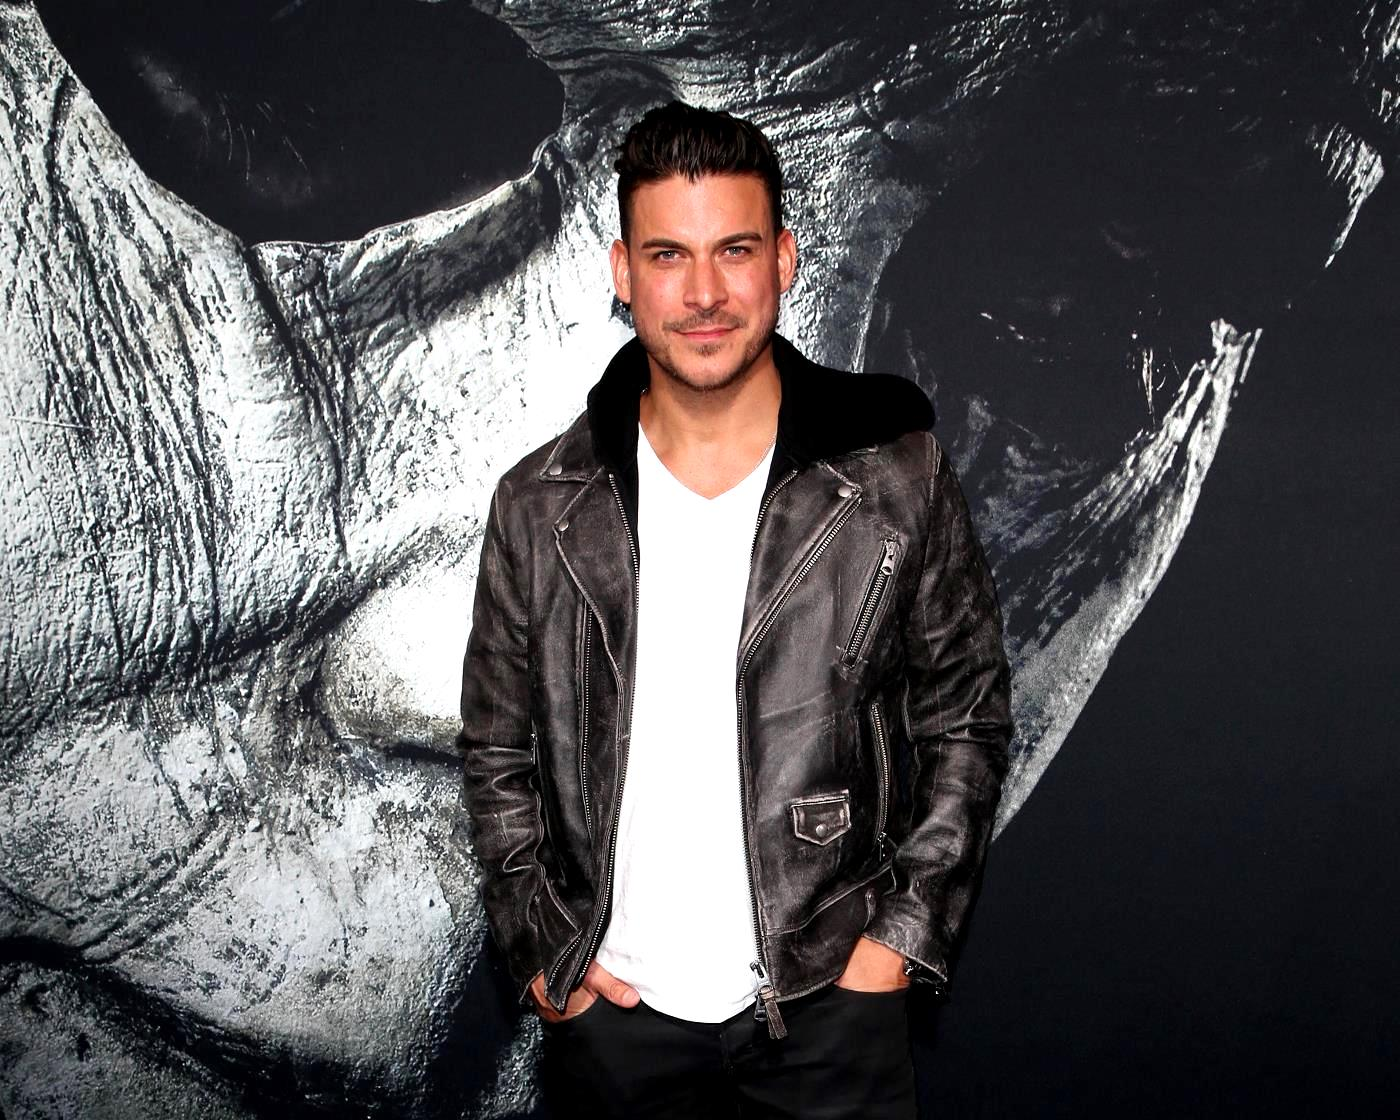 Jax Taylor Reveals Names of Two New Vanderpump Rules Cast Members, Plus He Throws Shade at Them!